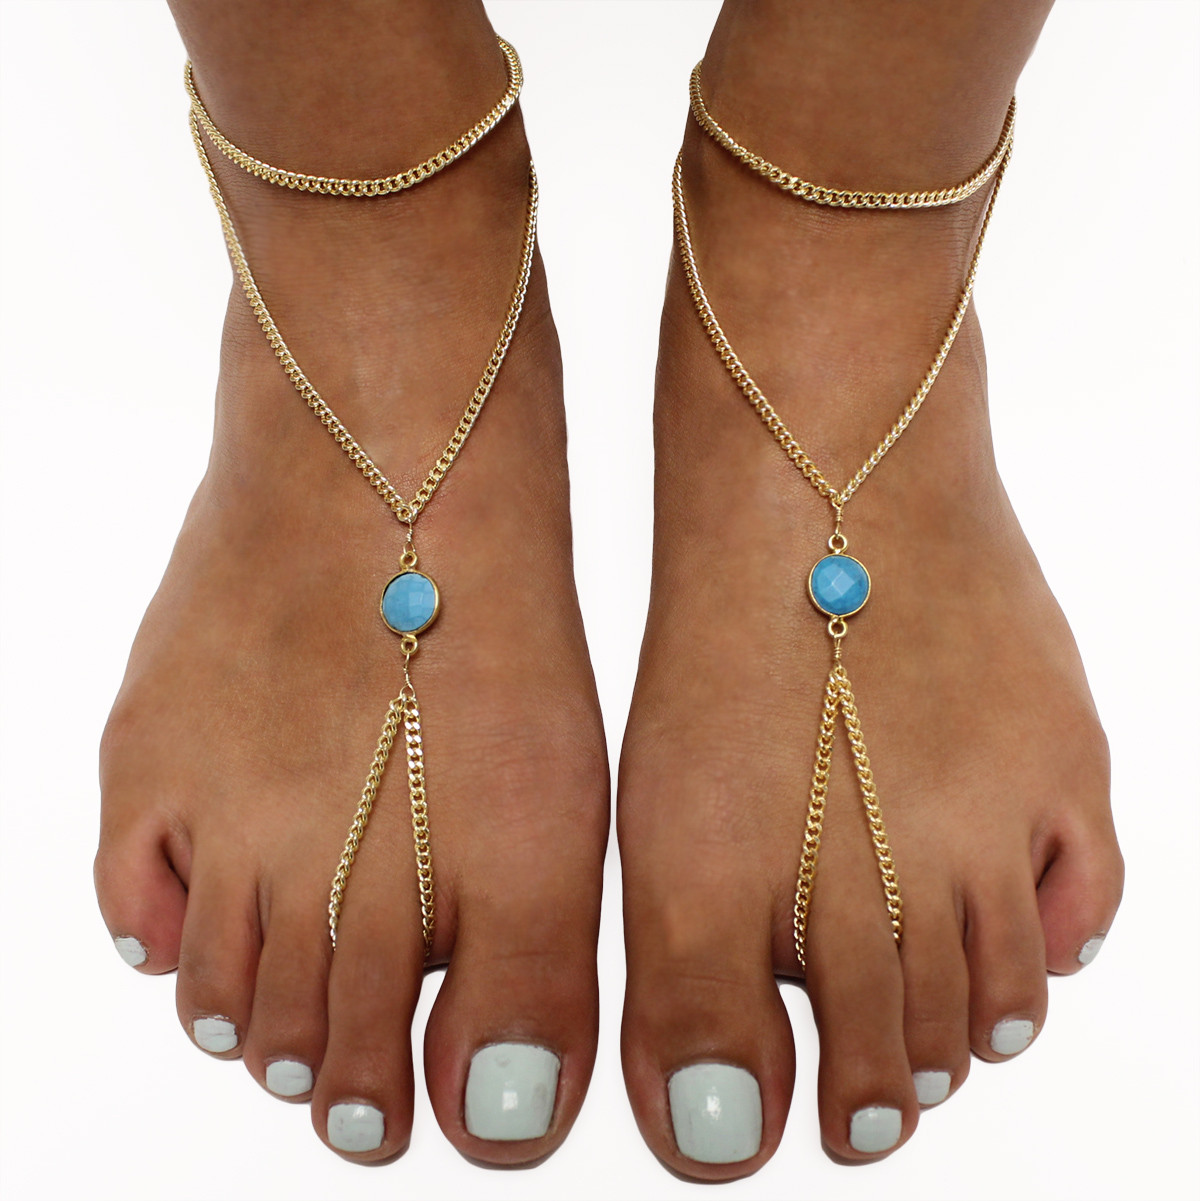 Gemstone Foot Chain